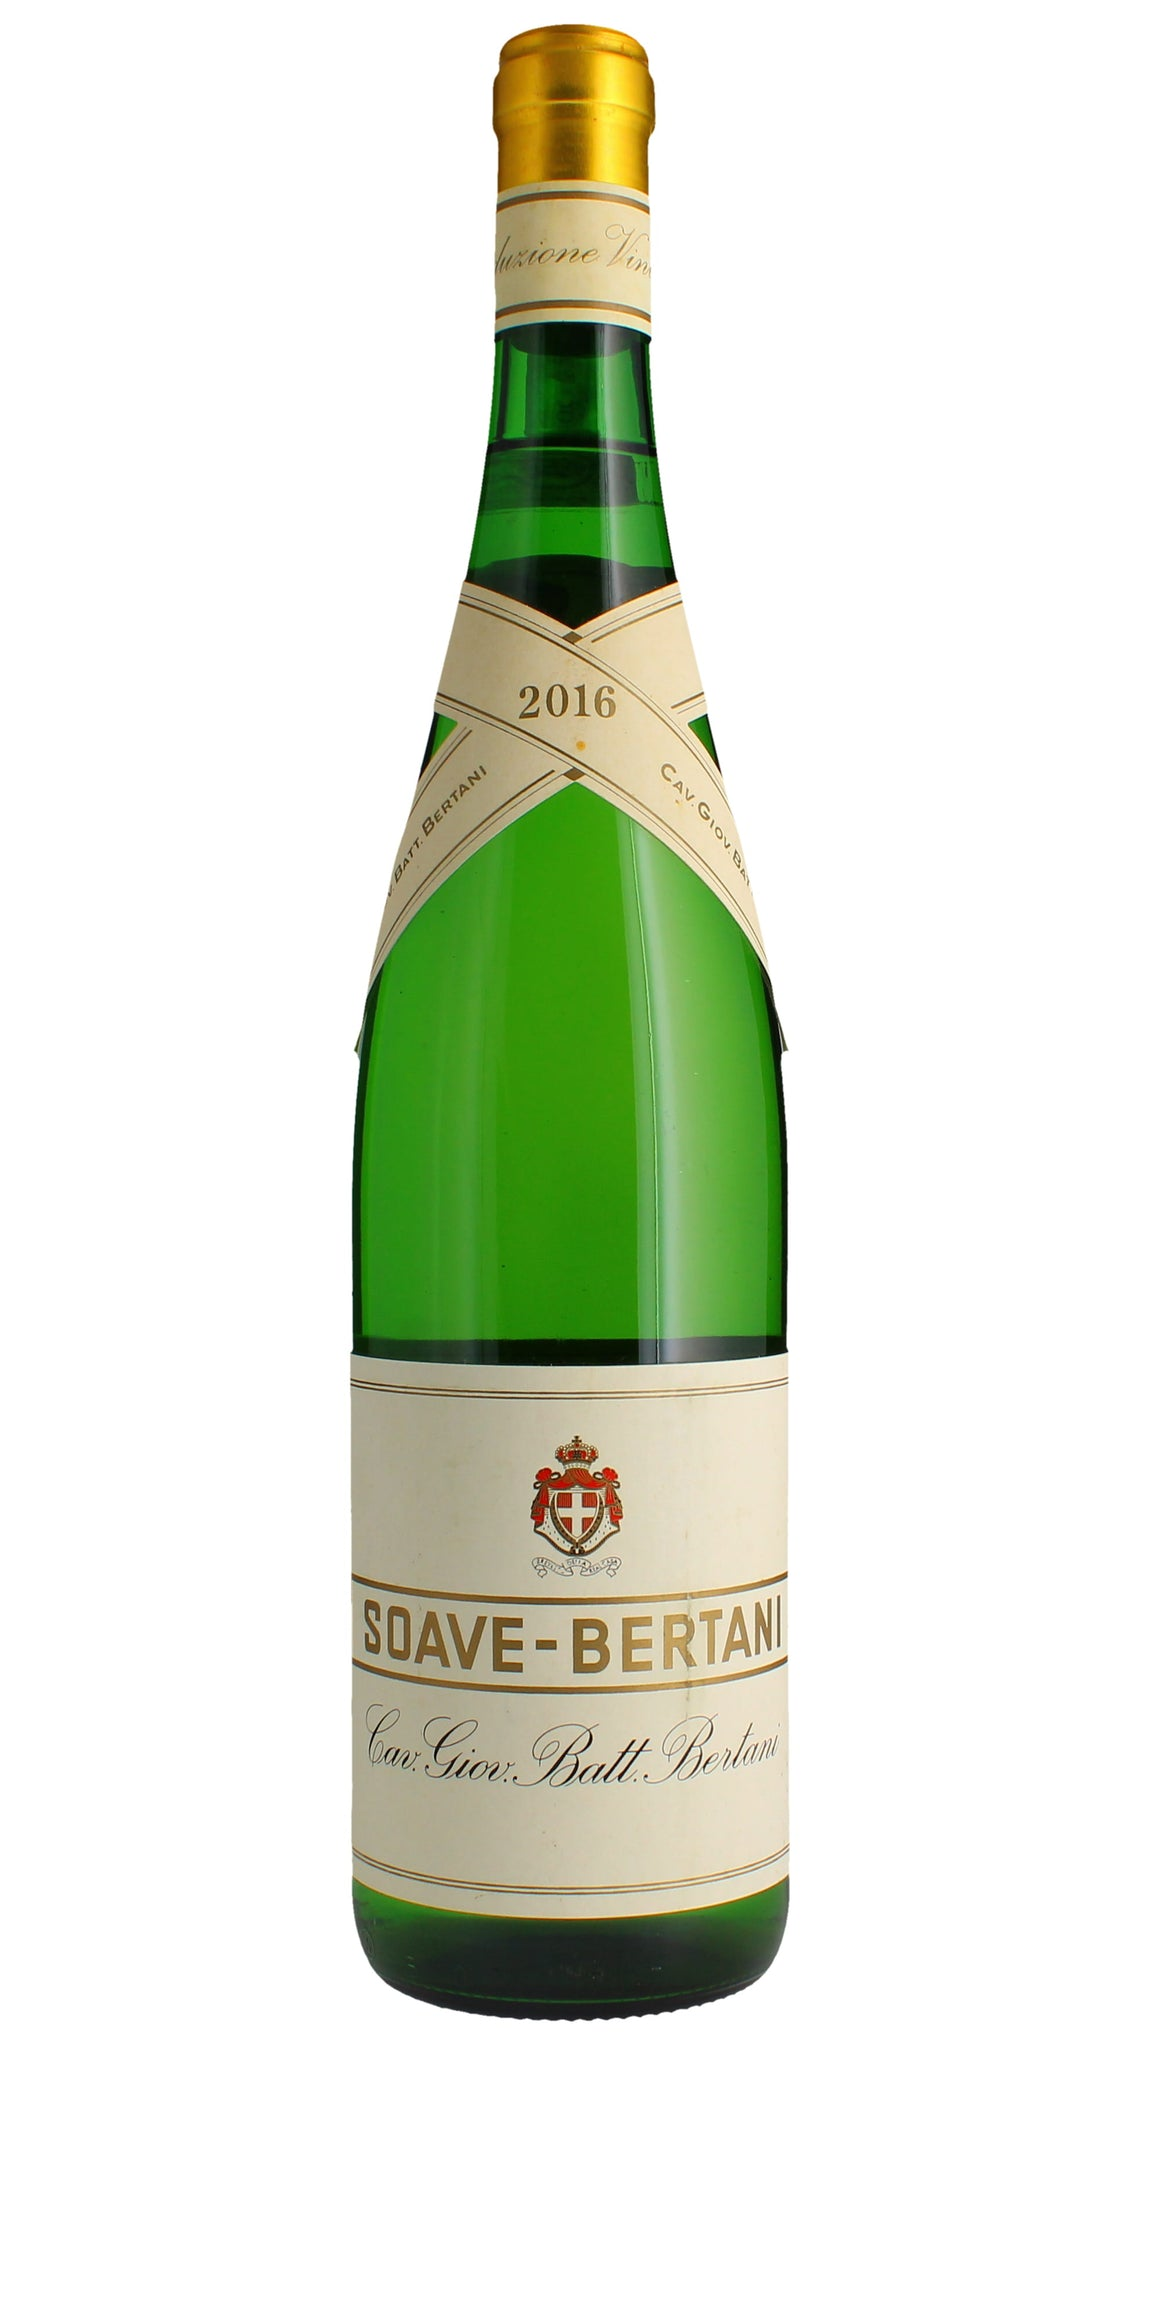 Bertani Soave Vintage Edition 2016